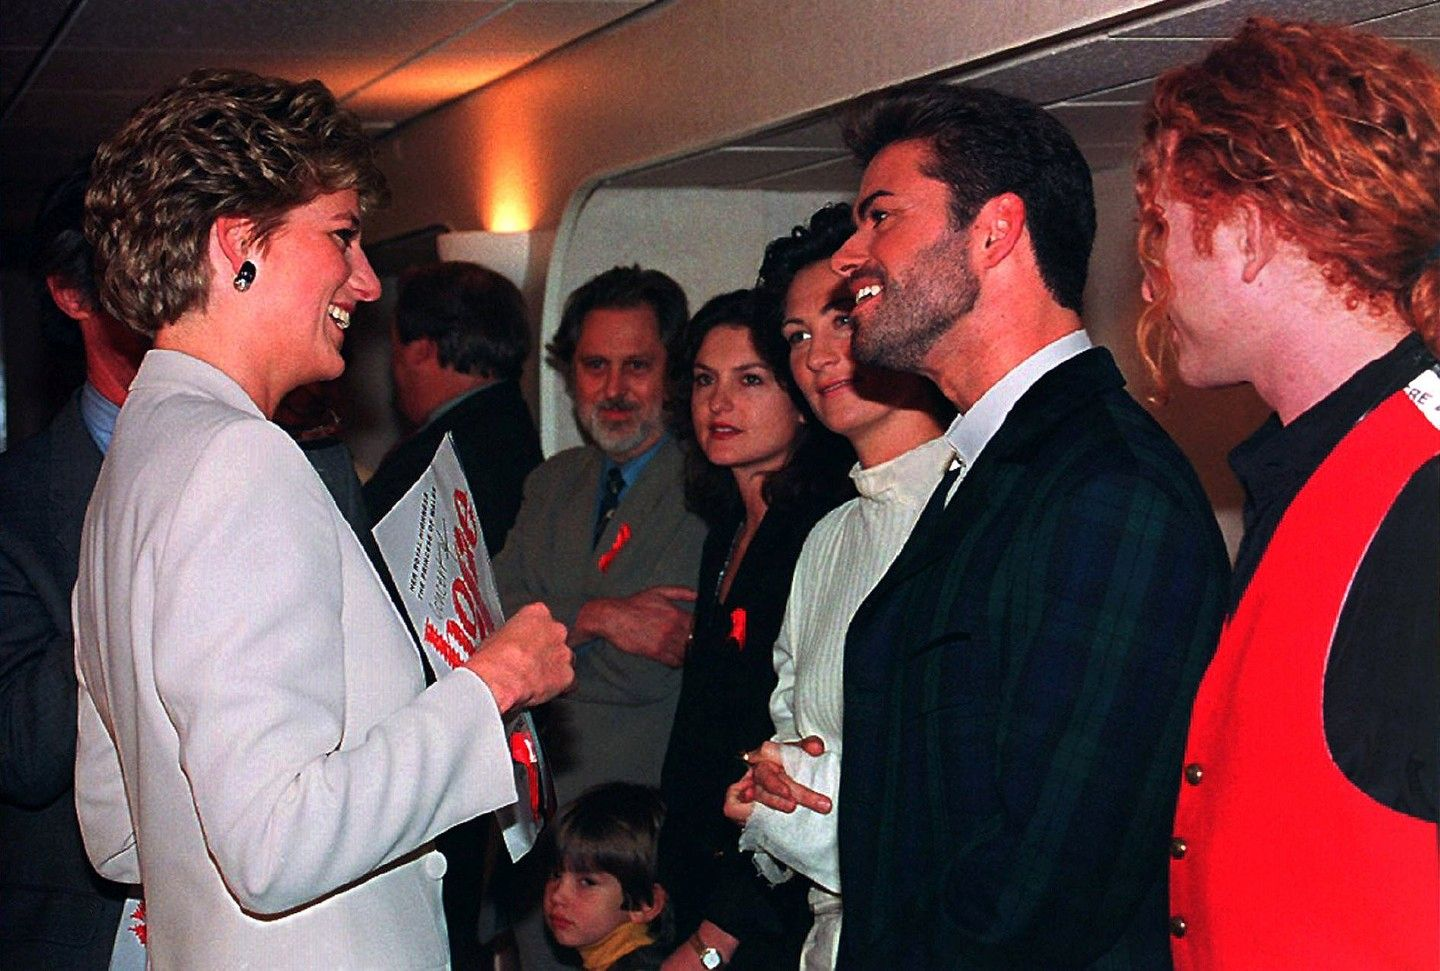 Backstage Concert of Hope George Michael with Princess Diana